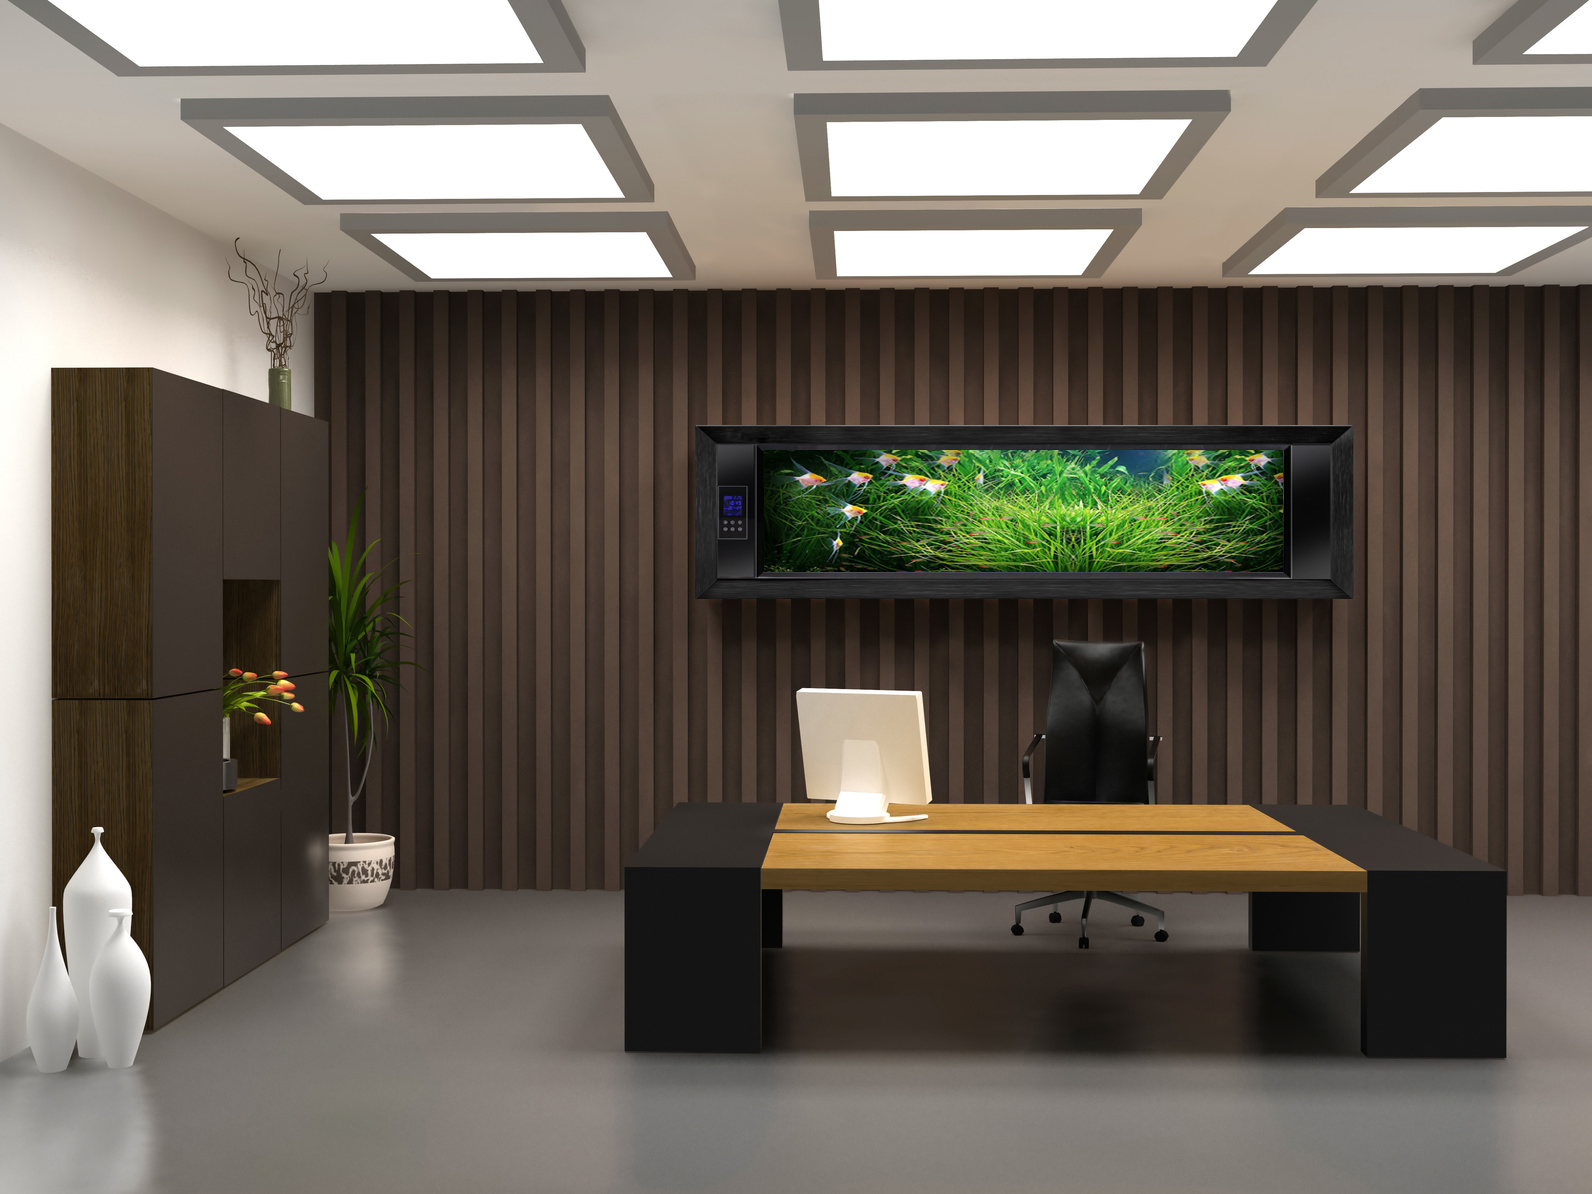 Elegant ceo office design bellisima for Modern office decor ideas